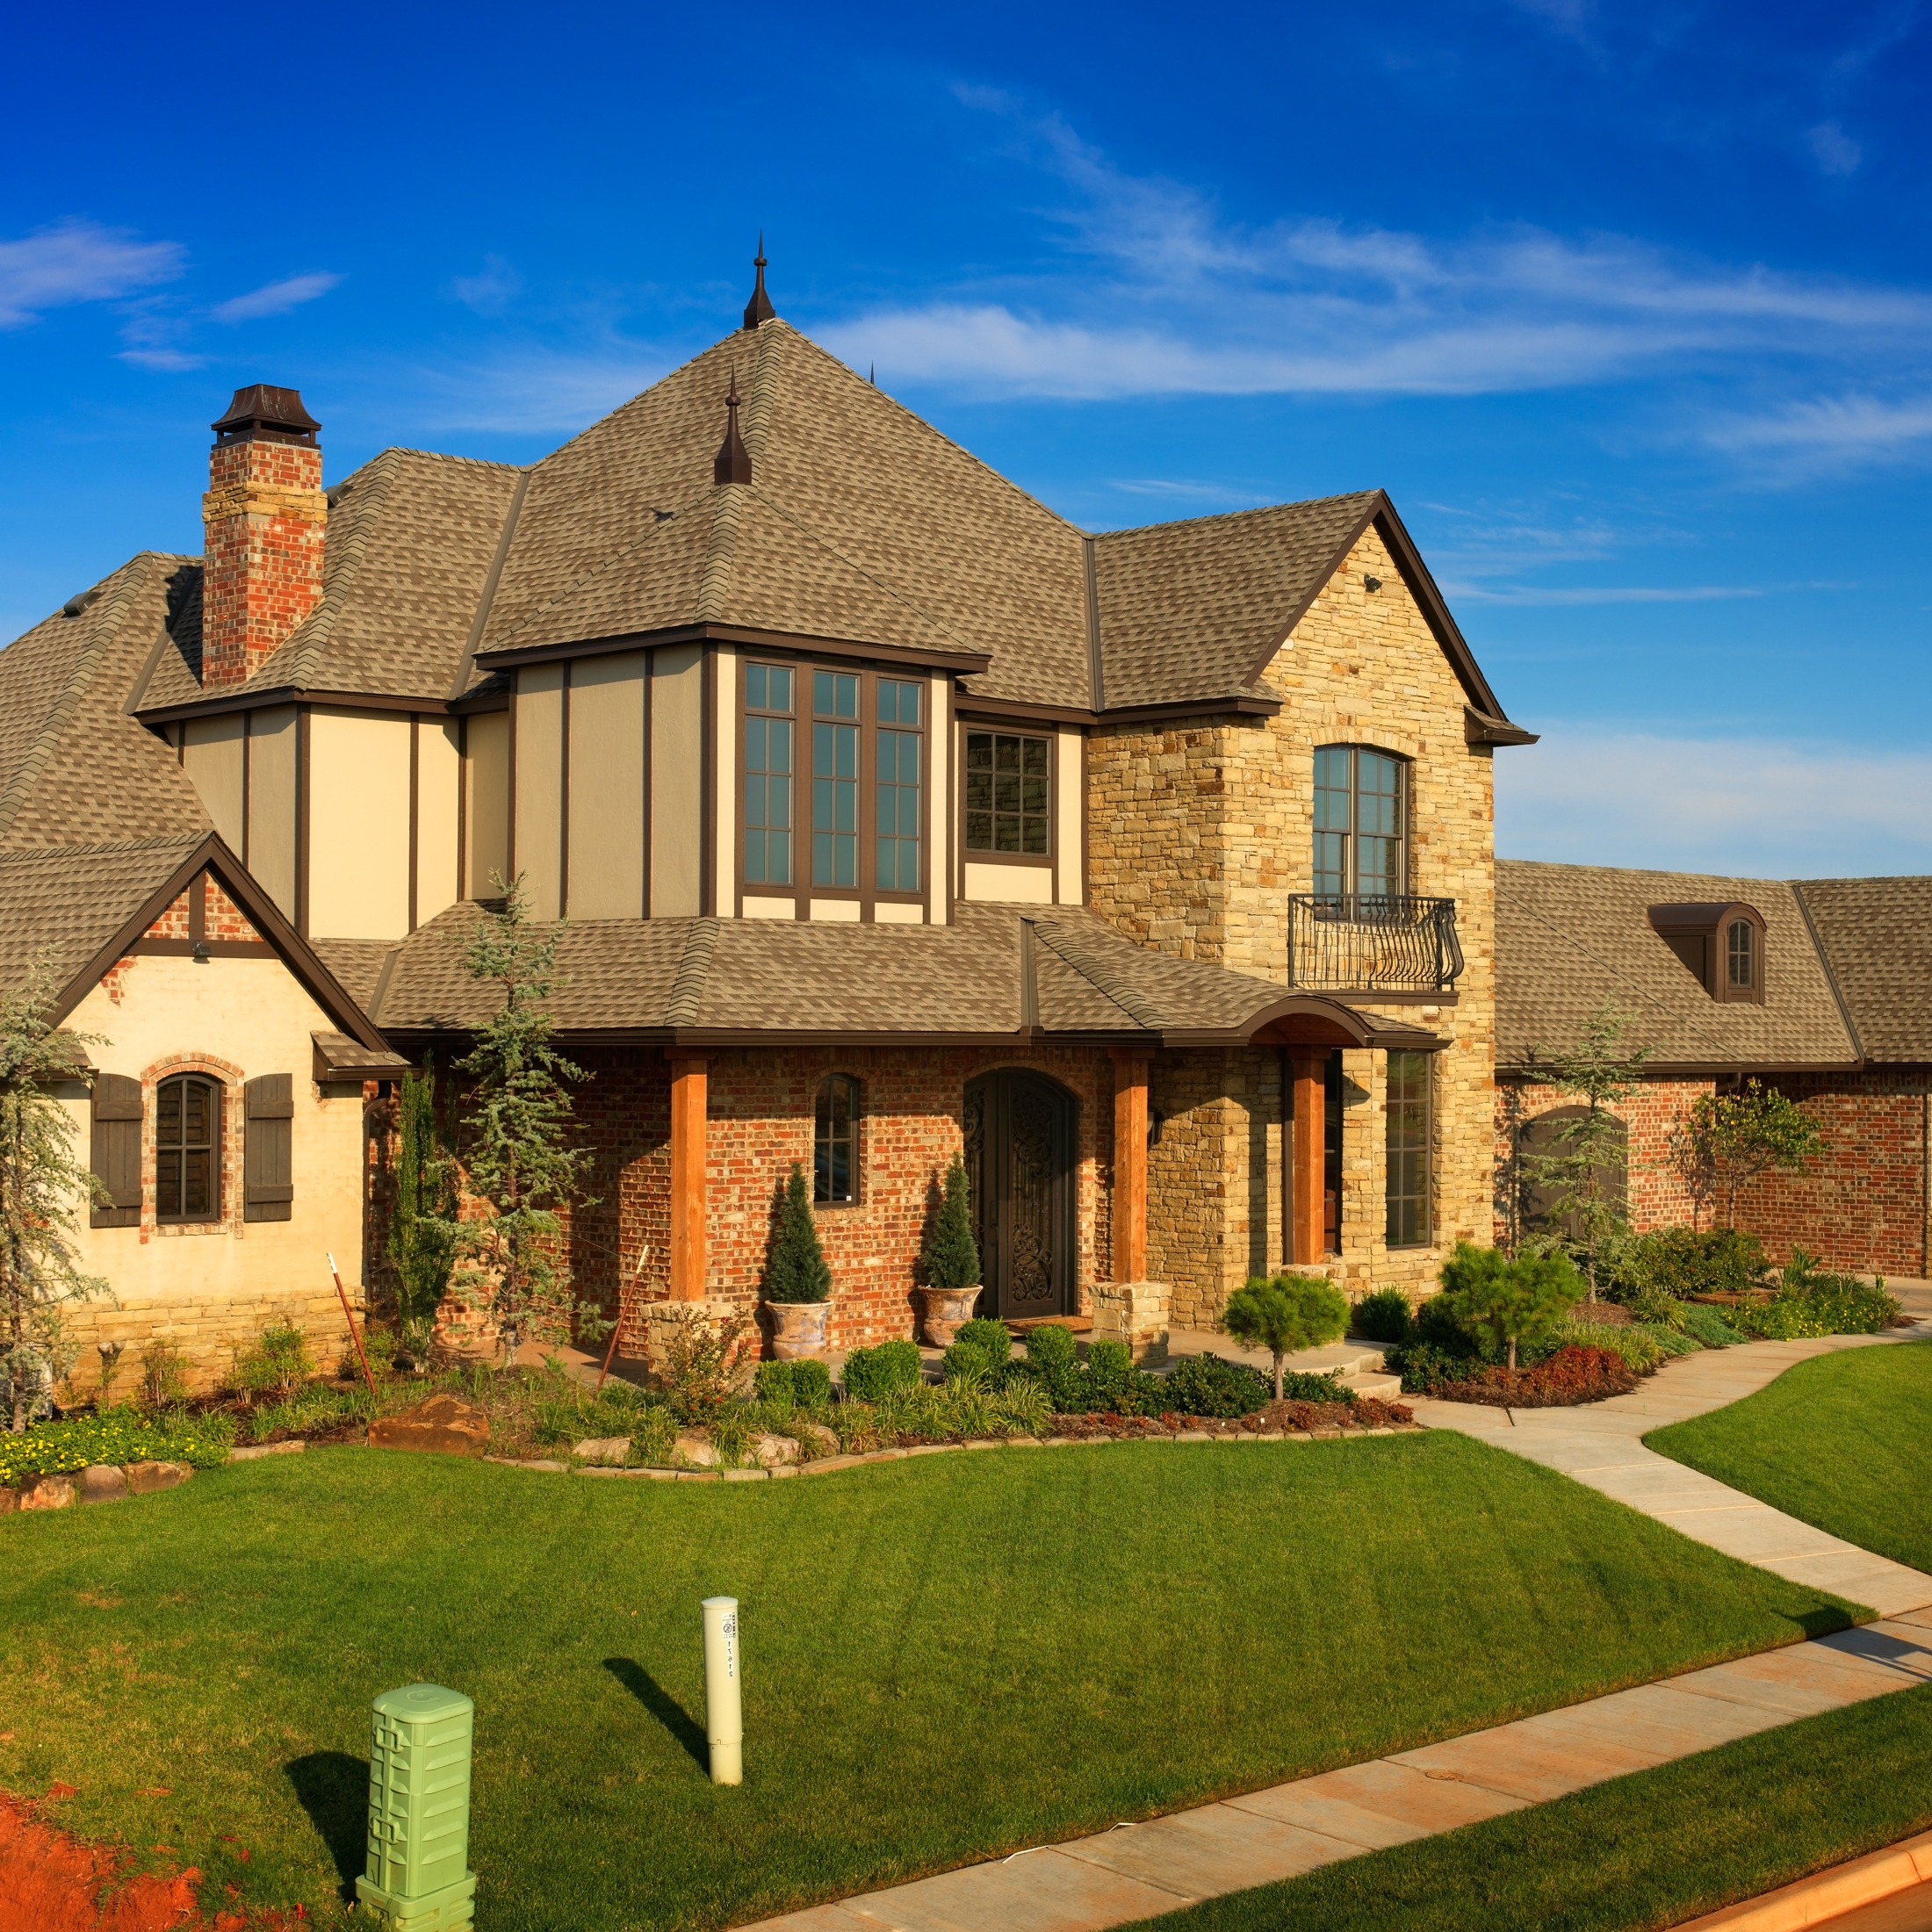 Cozy Home Exterior Design Using Brown Gaf Timberline Hd Roof And Brick Siding Plus Glass Windows Ideas